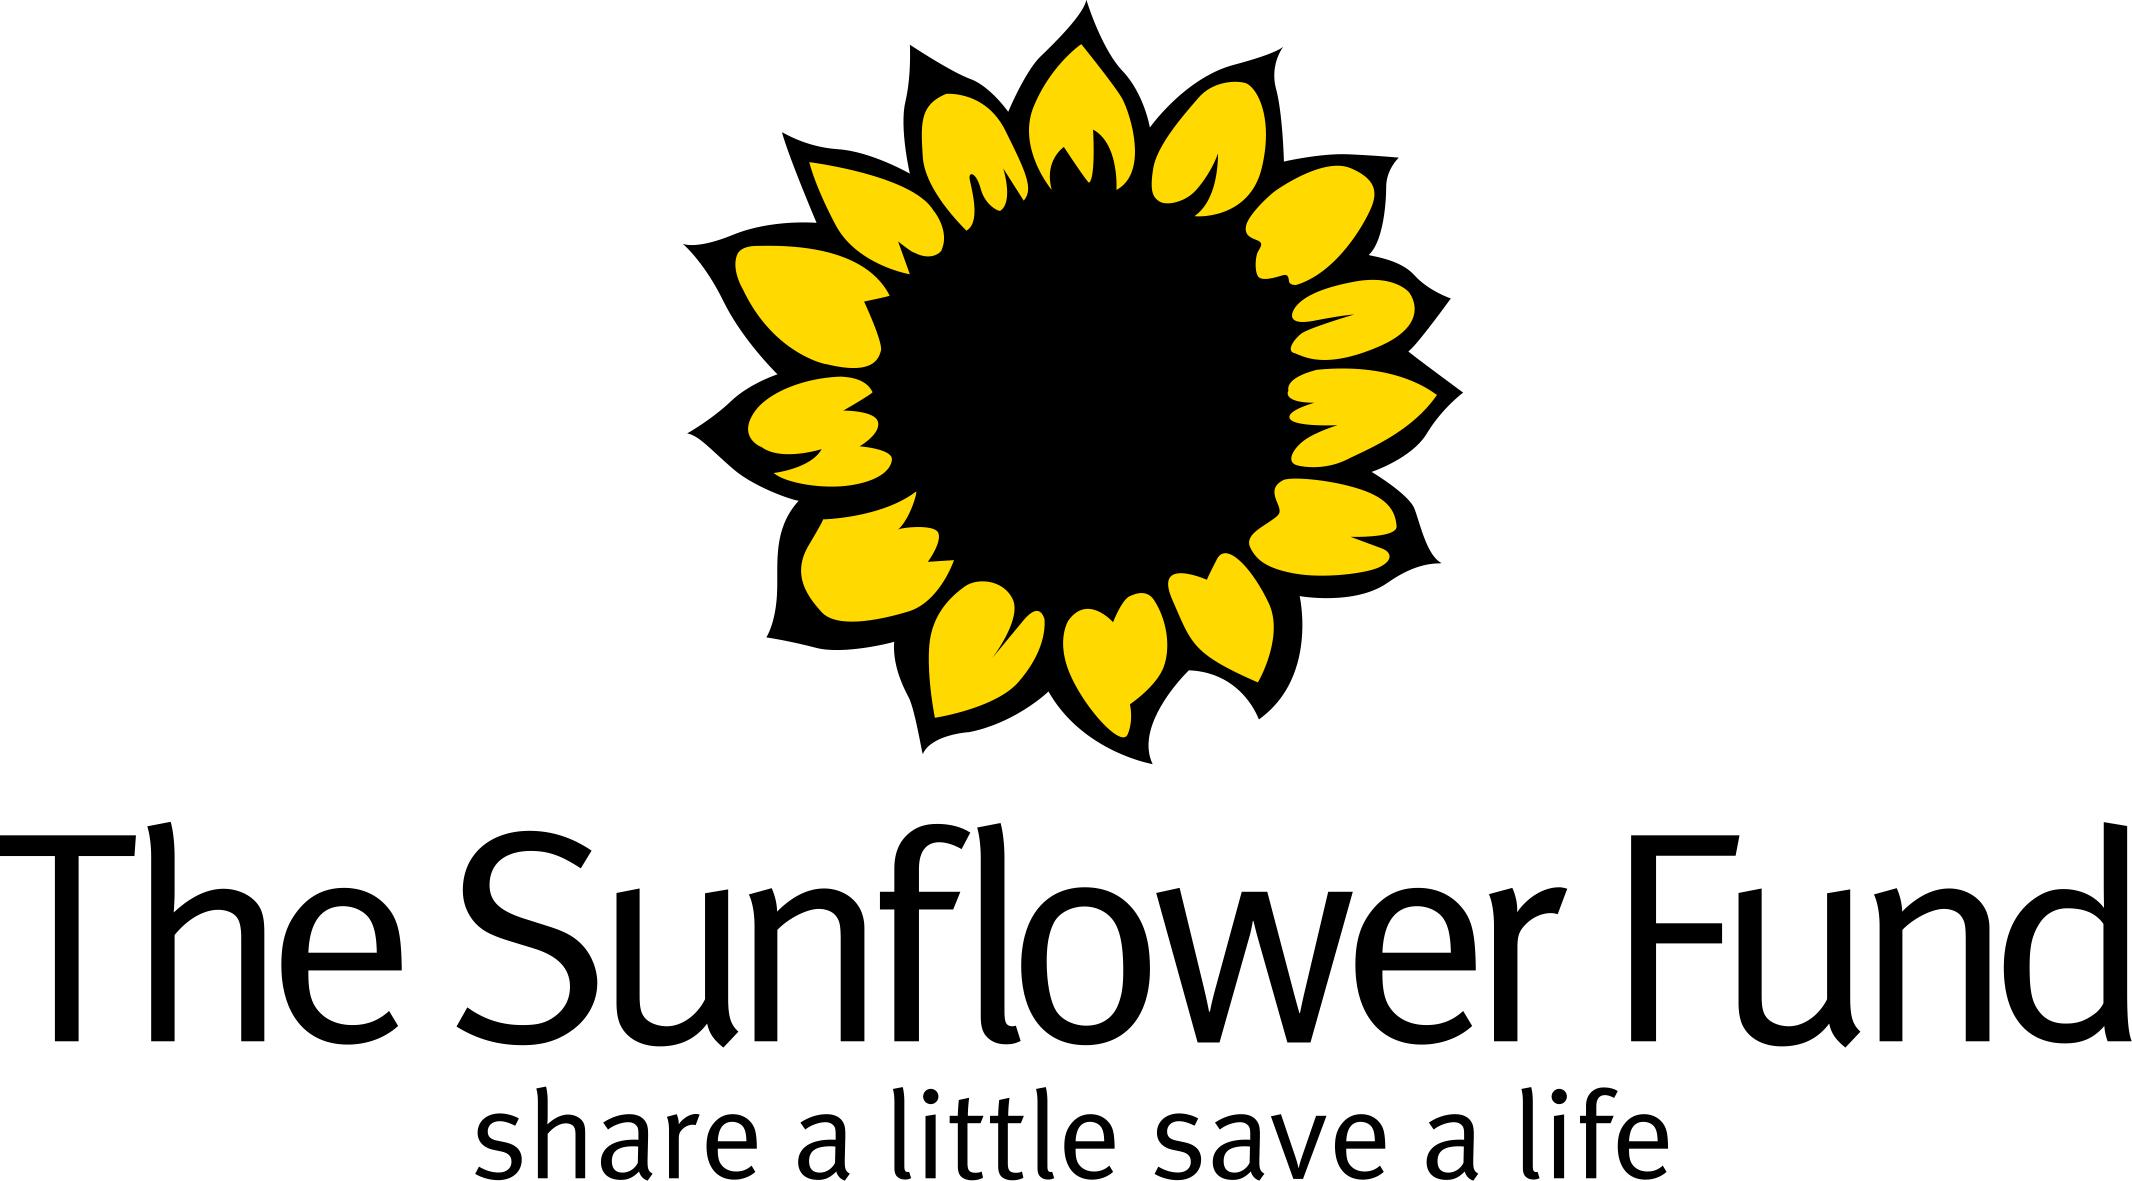 The Sunflower Fund